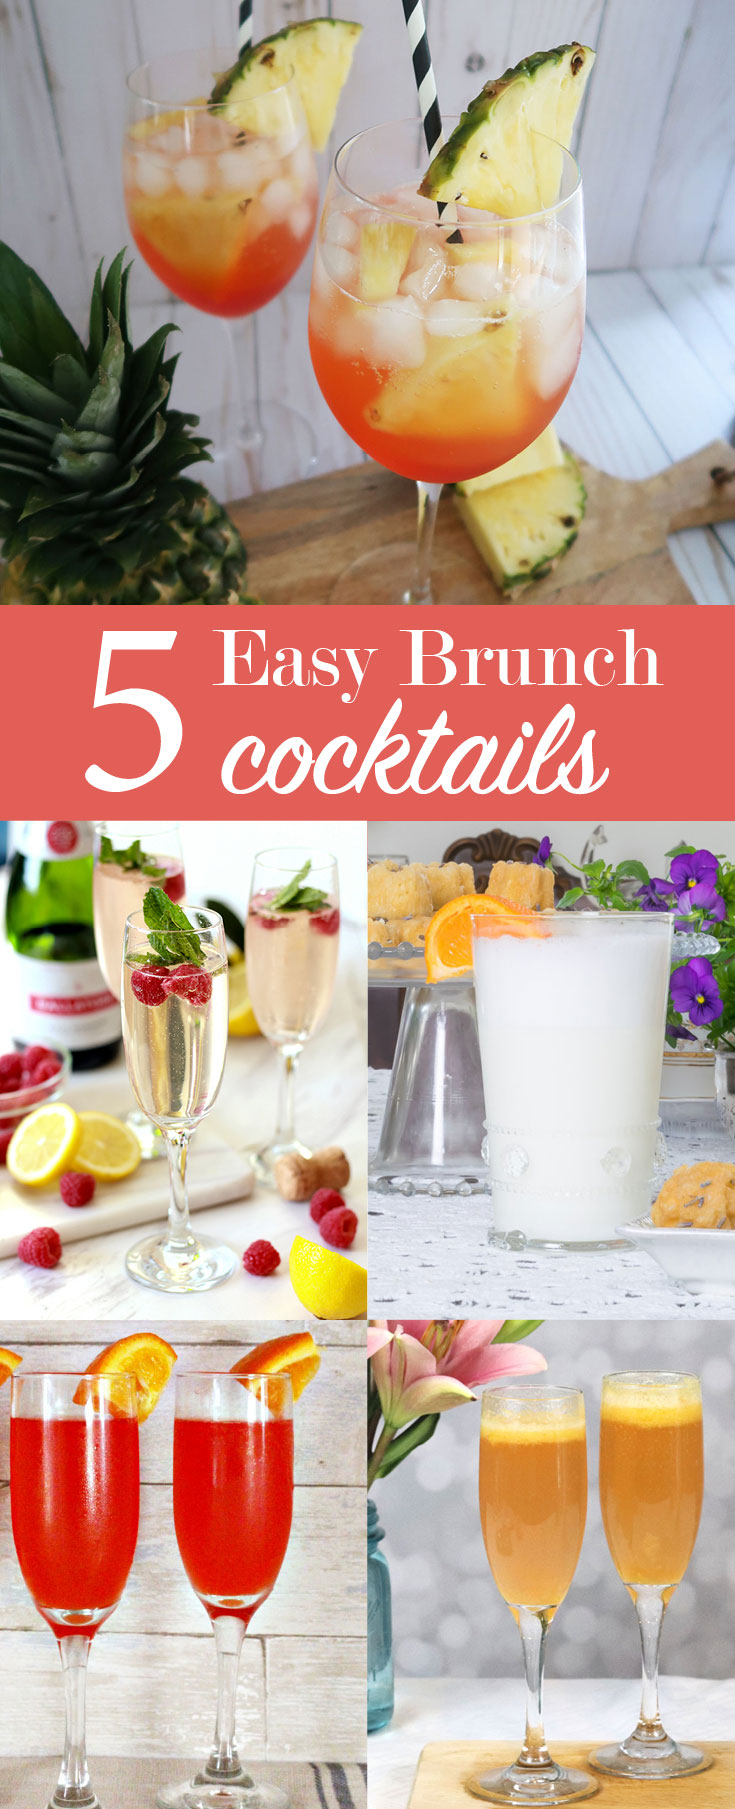 5_Brunch_Cocktails